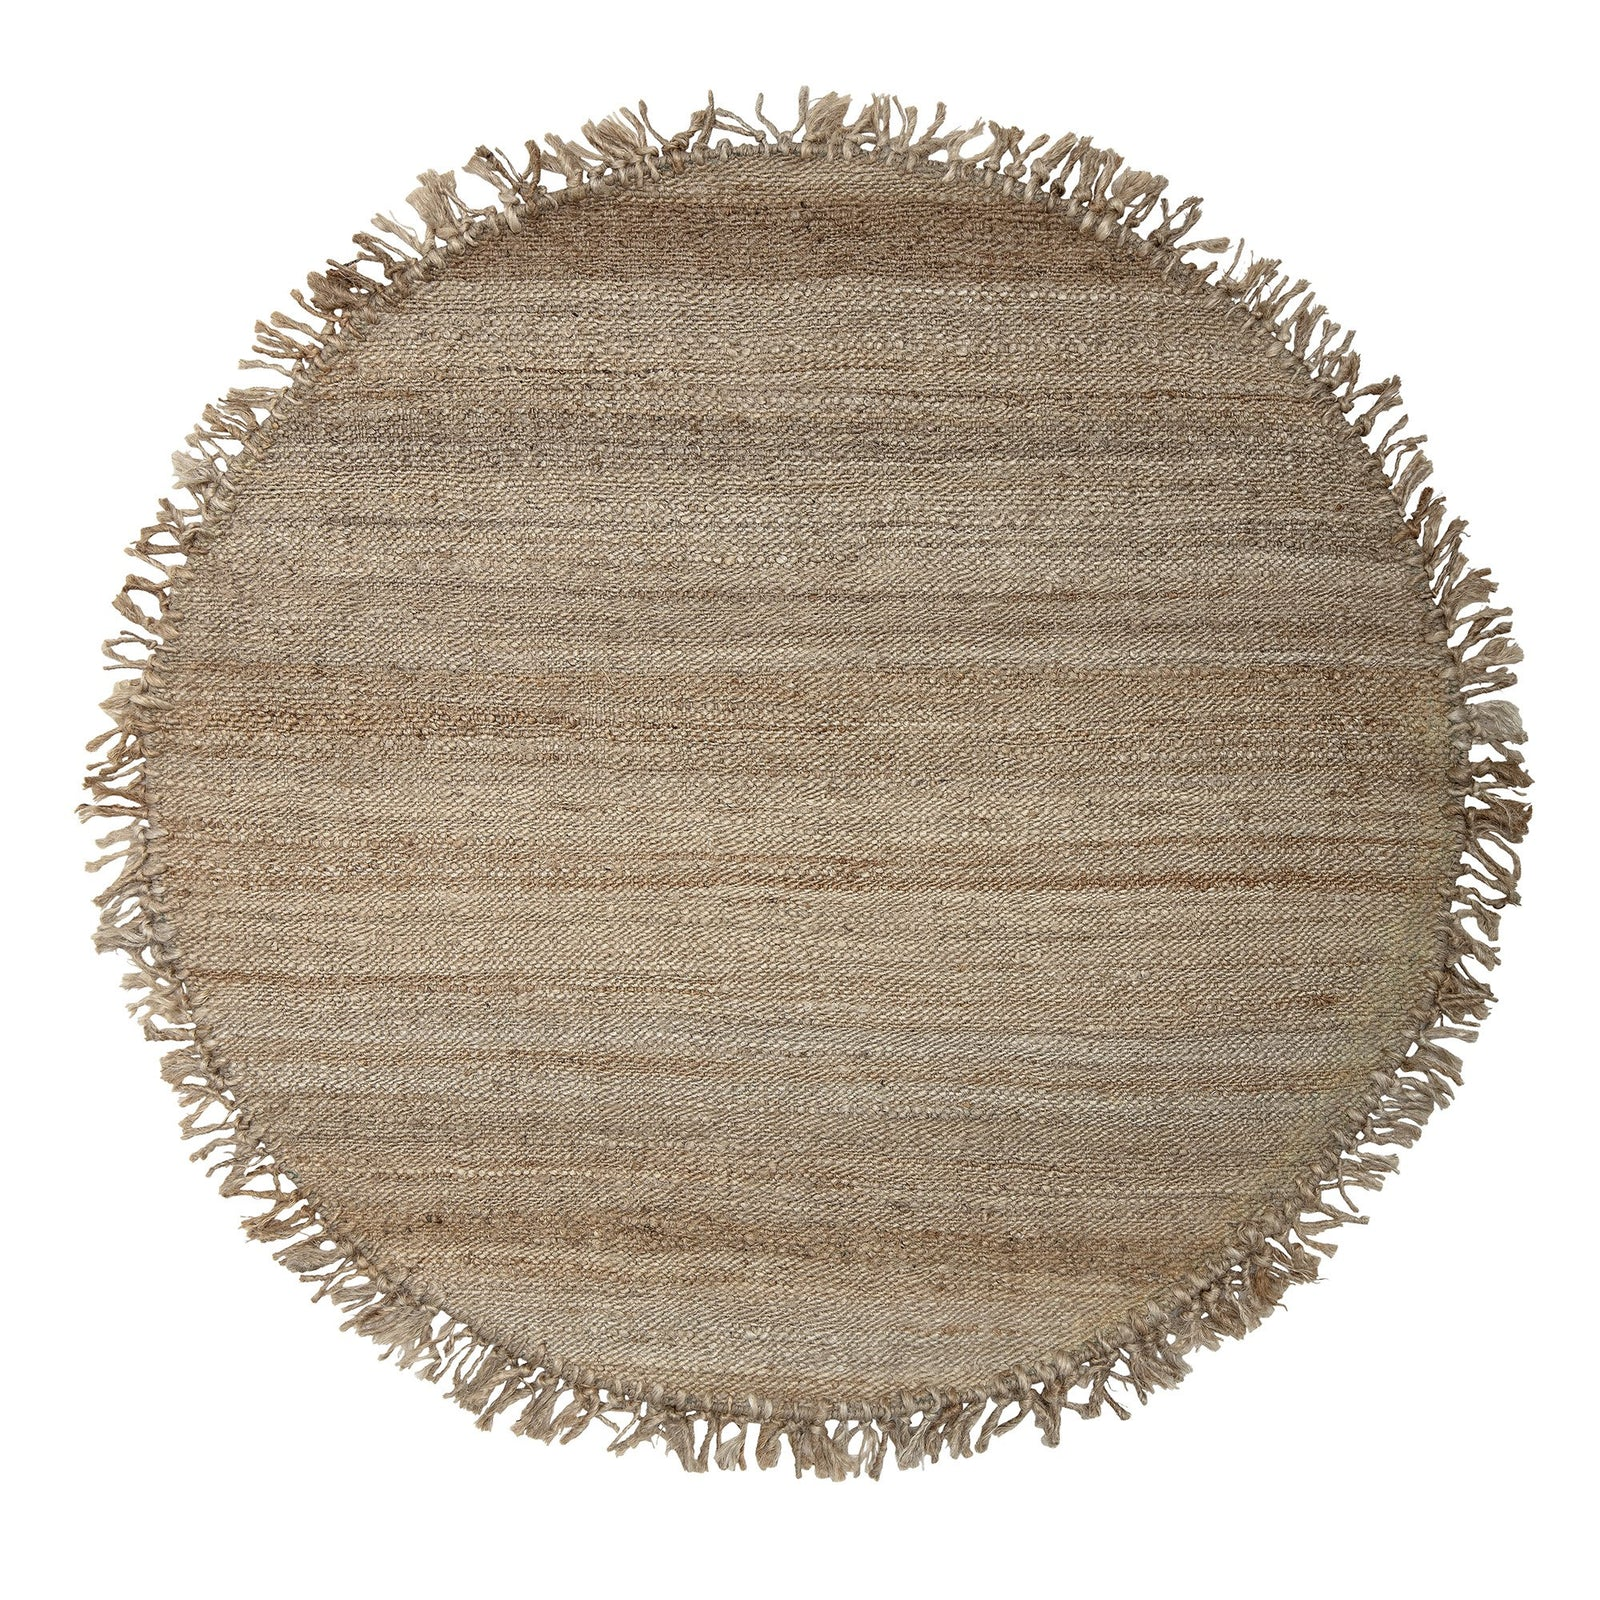 Rug Nature Jute - Bloomingville